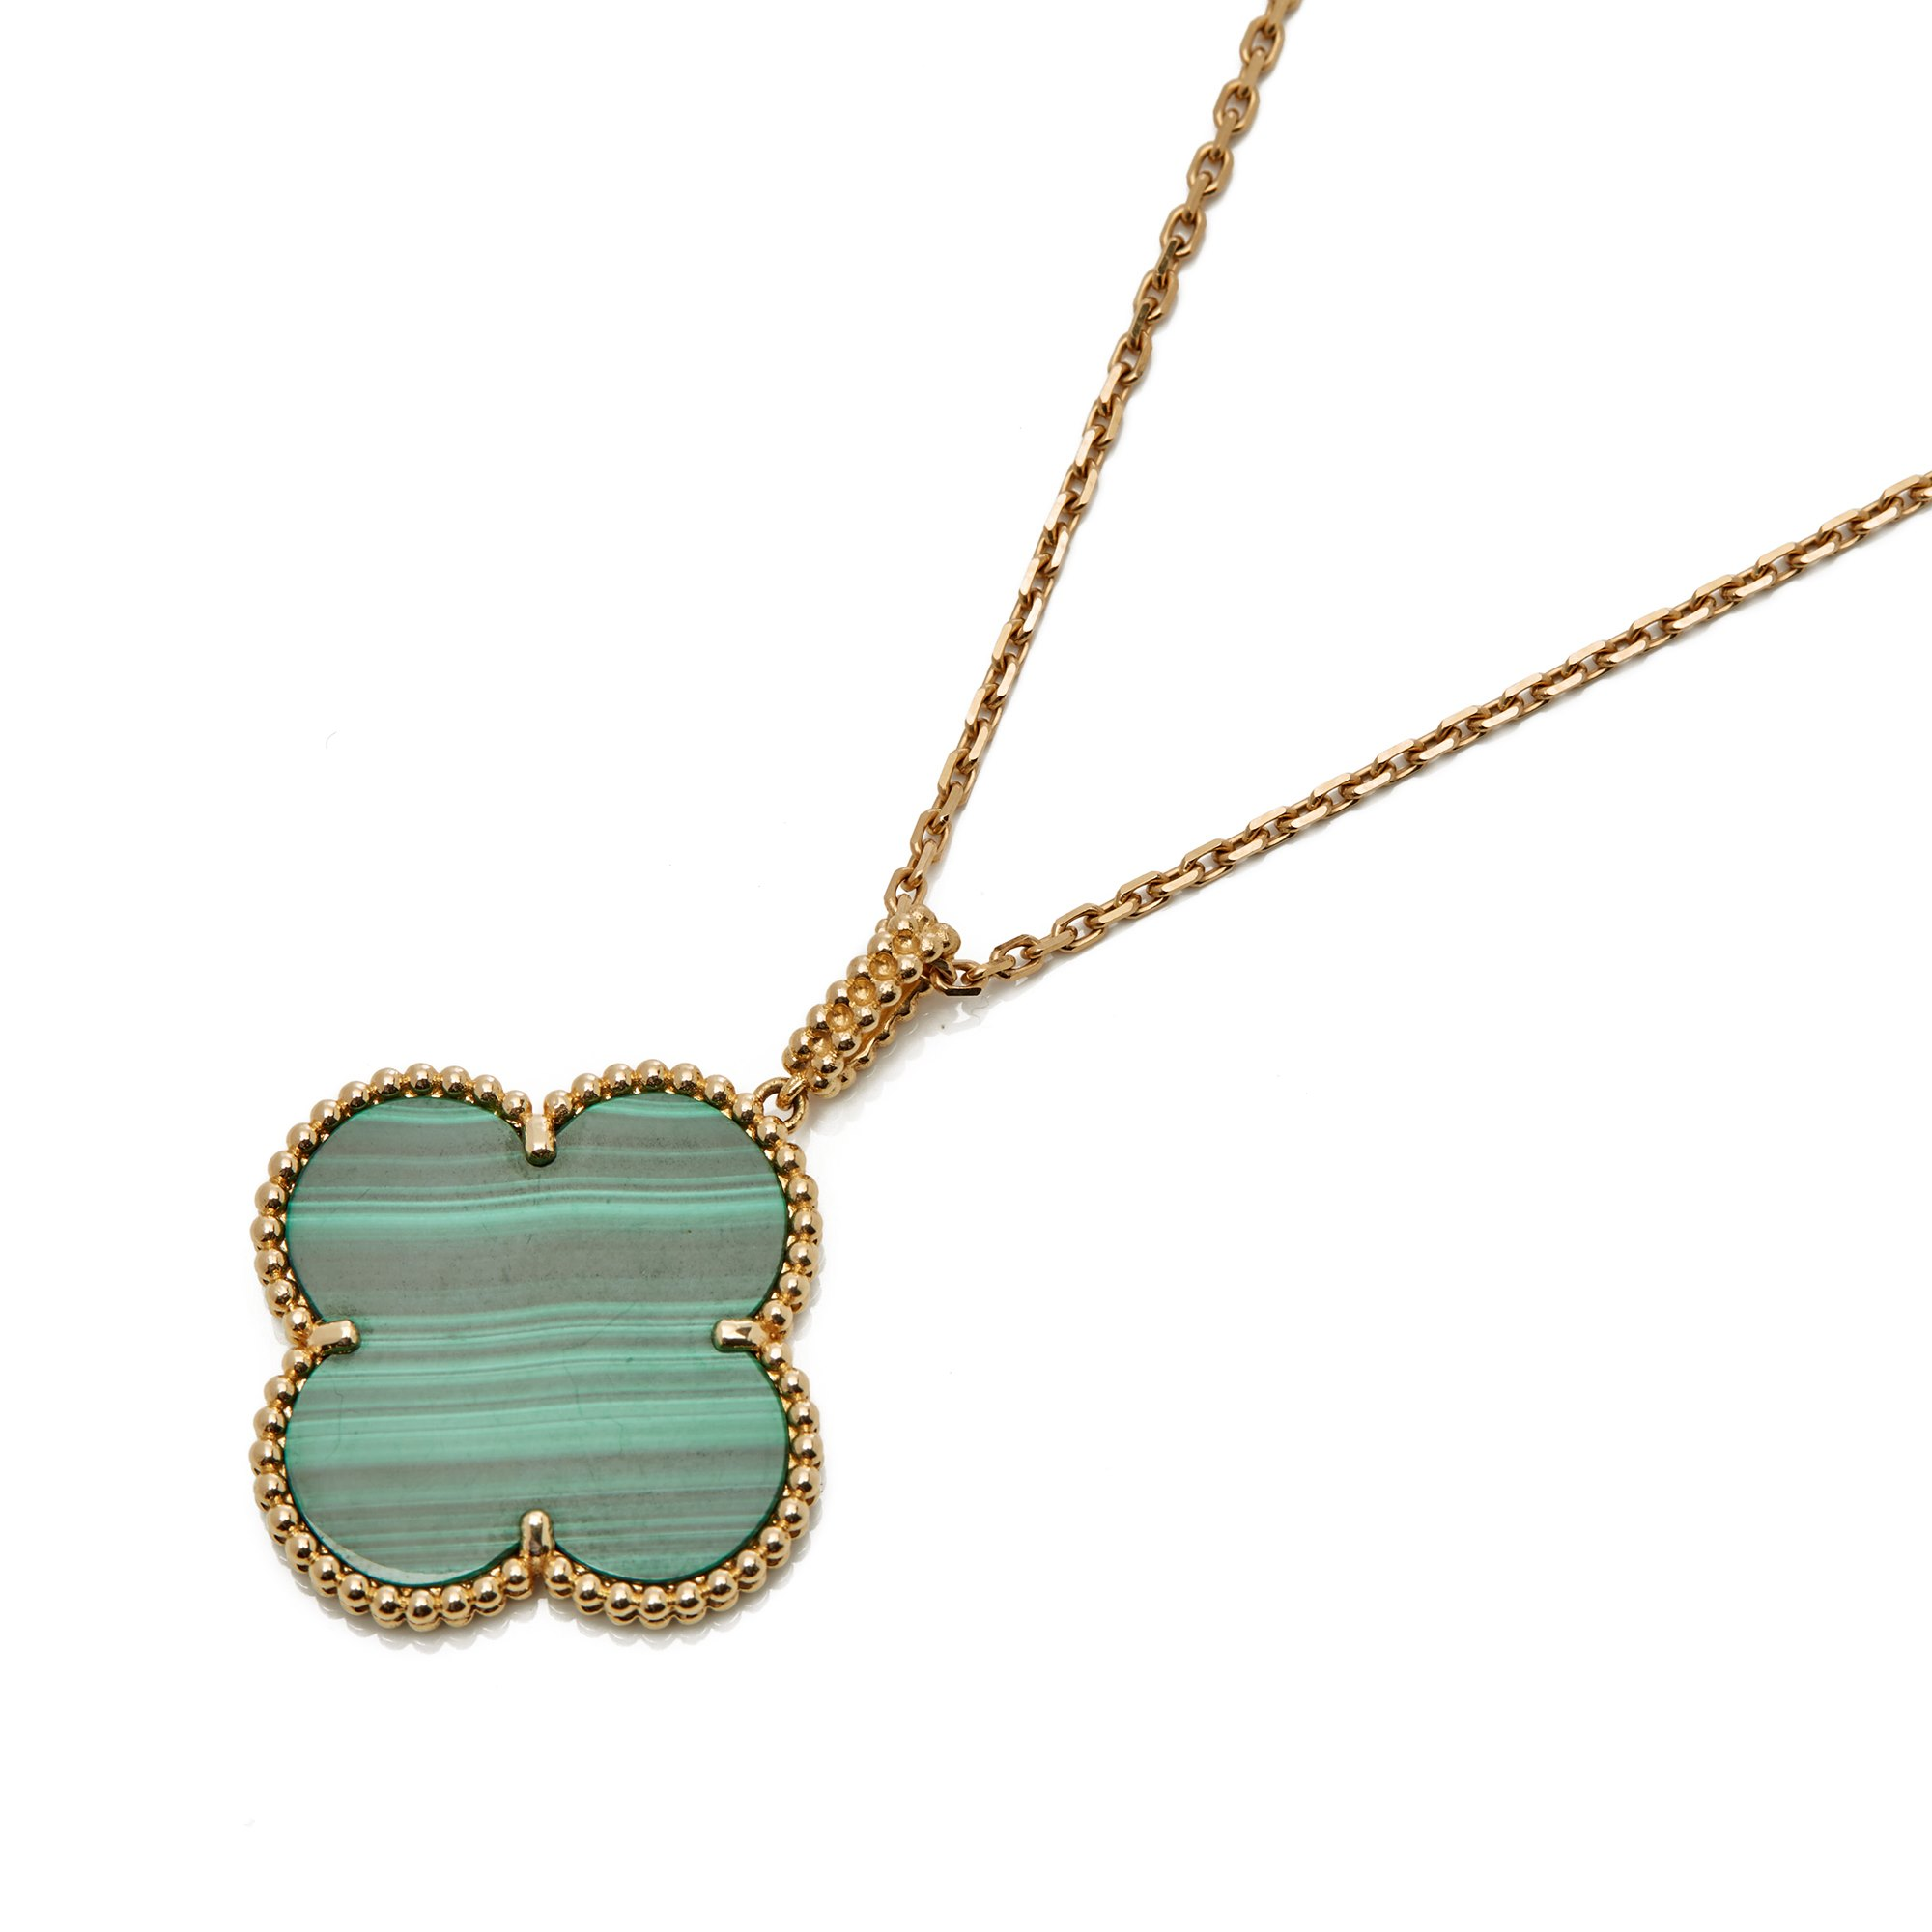 Van Cleef & Arpels 18k Yellow Gold One Motif Malachite Alhambra Necklace